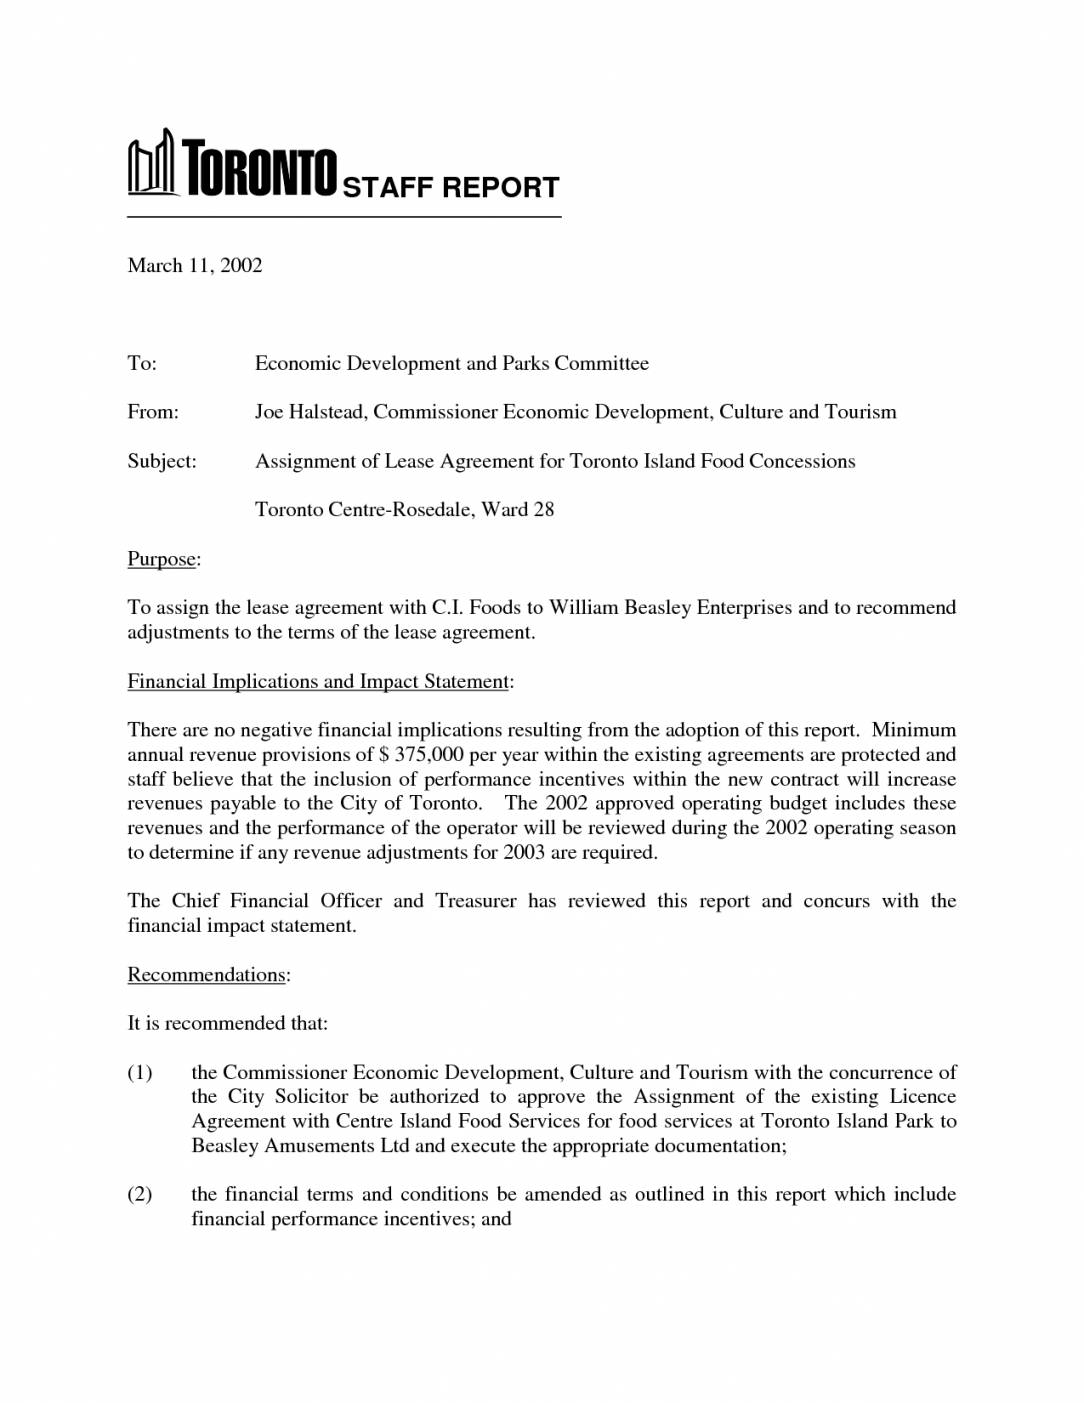 Lease Proposal Template